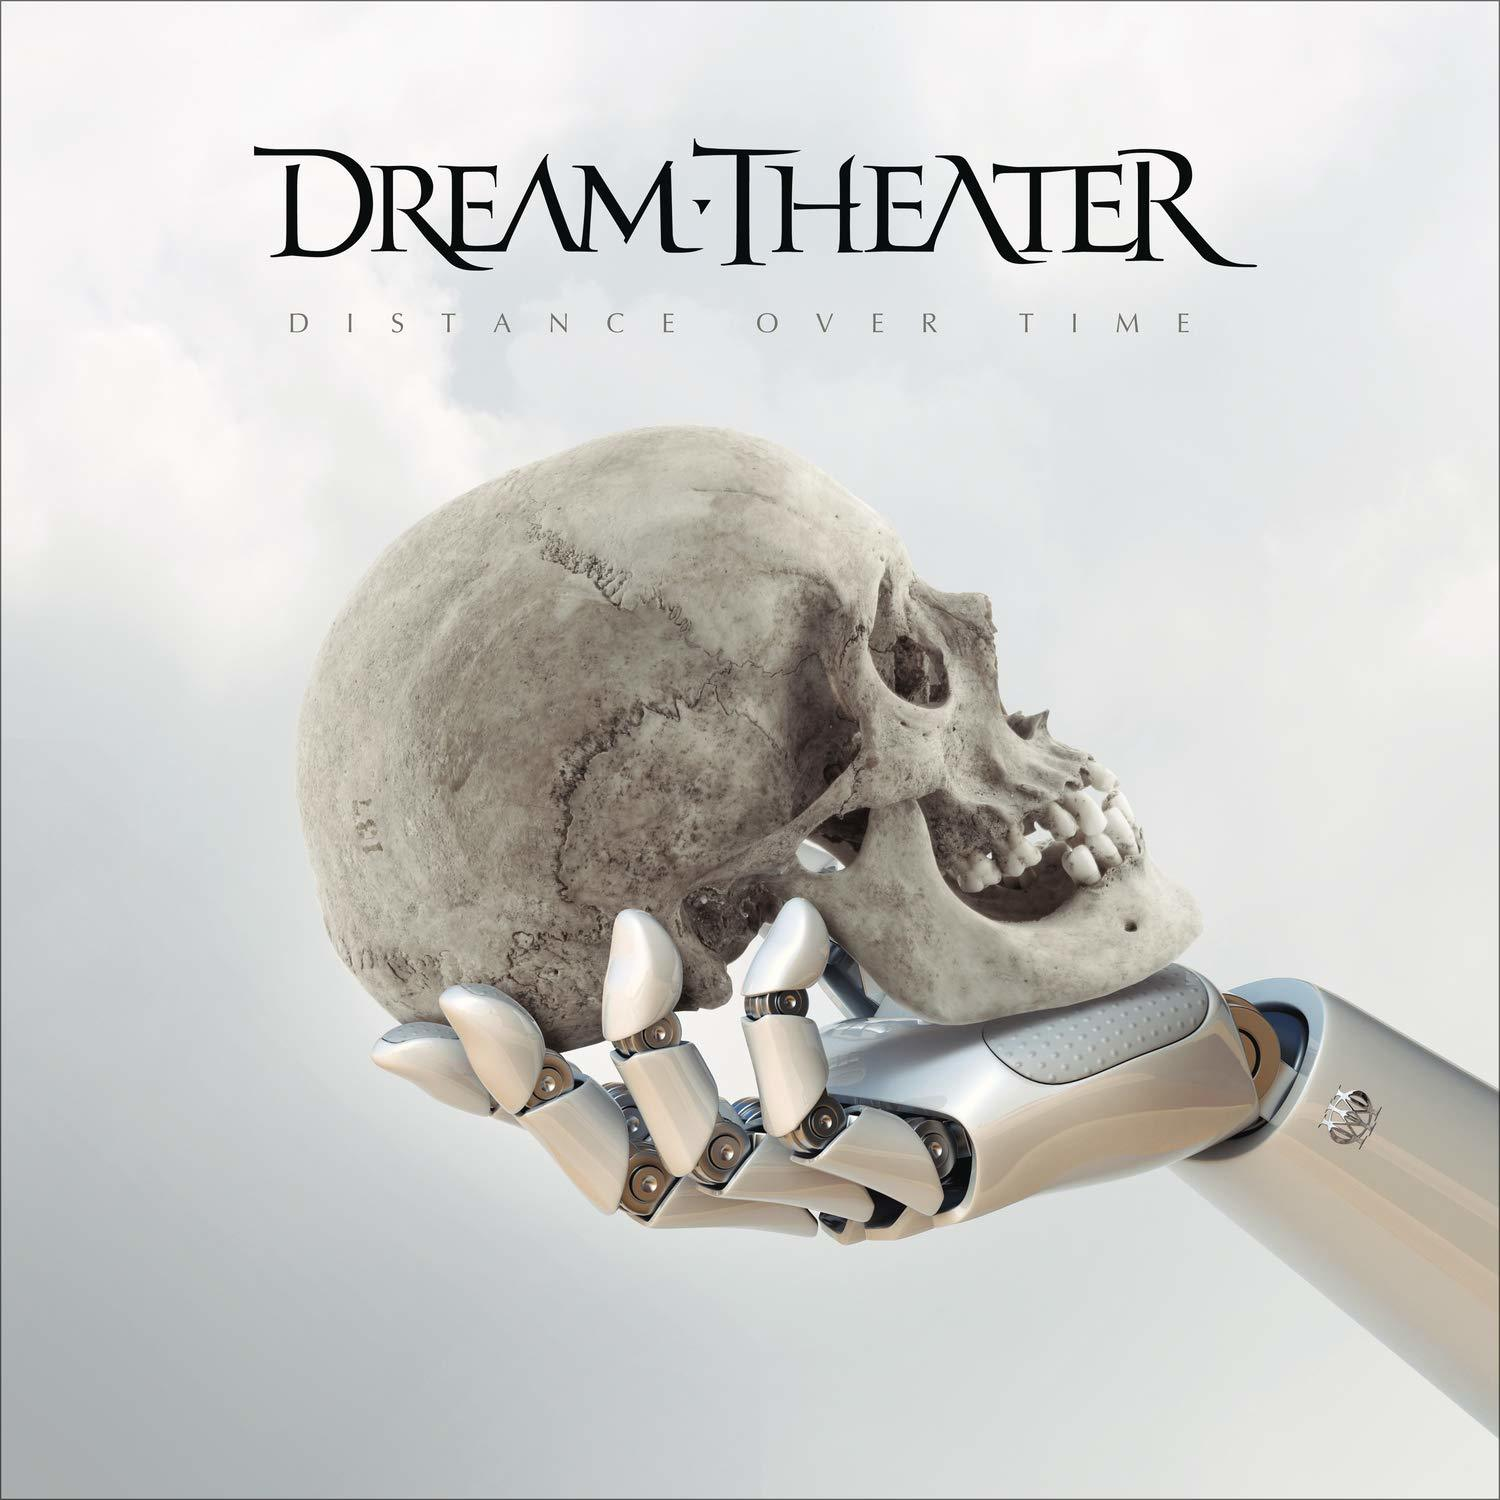 DREAM THEATER Distance Over Time (Limited Edition, Special Edition  digipak) CD.jpg